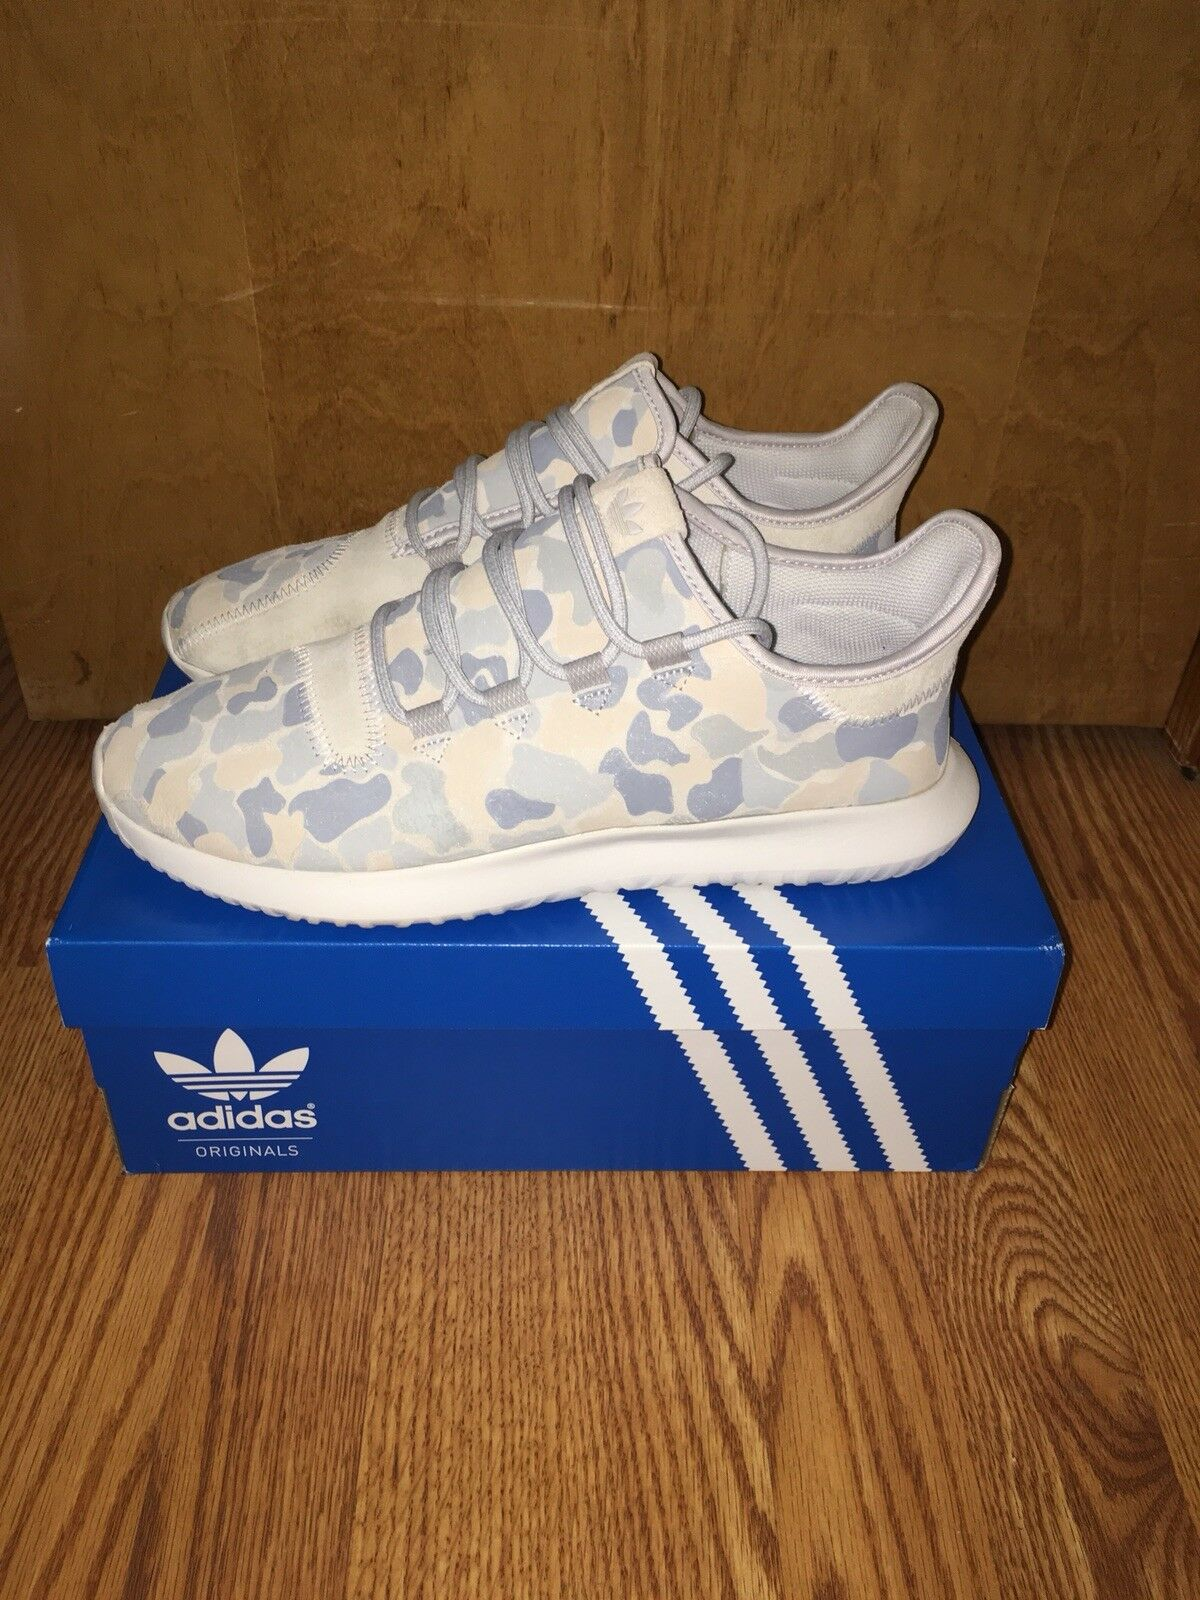 Adidas Tubular Shadow Originals Sneakers Mens Size 10.5